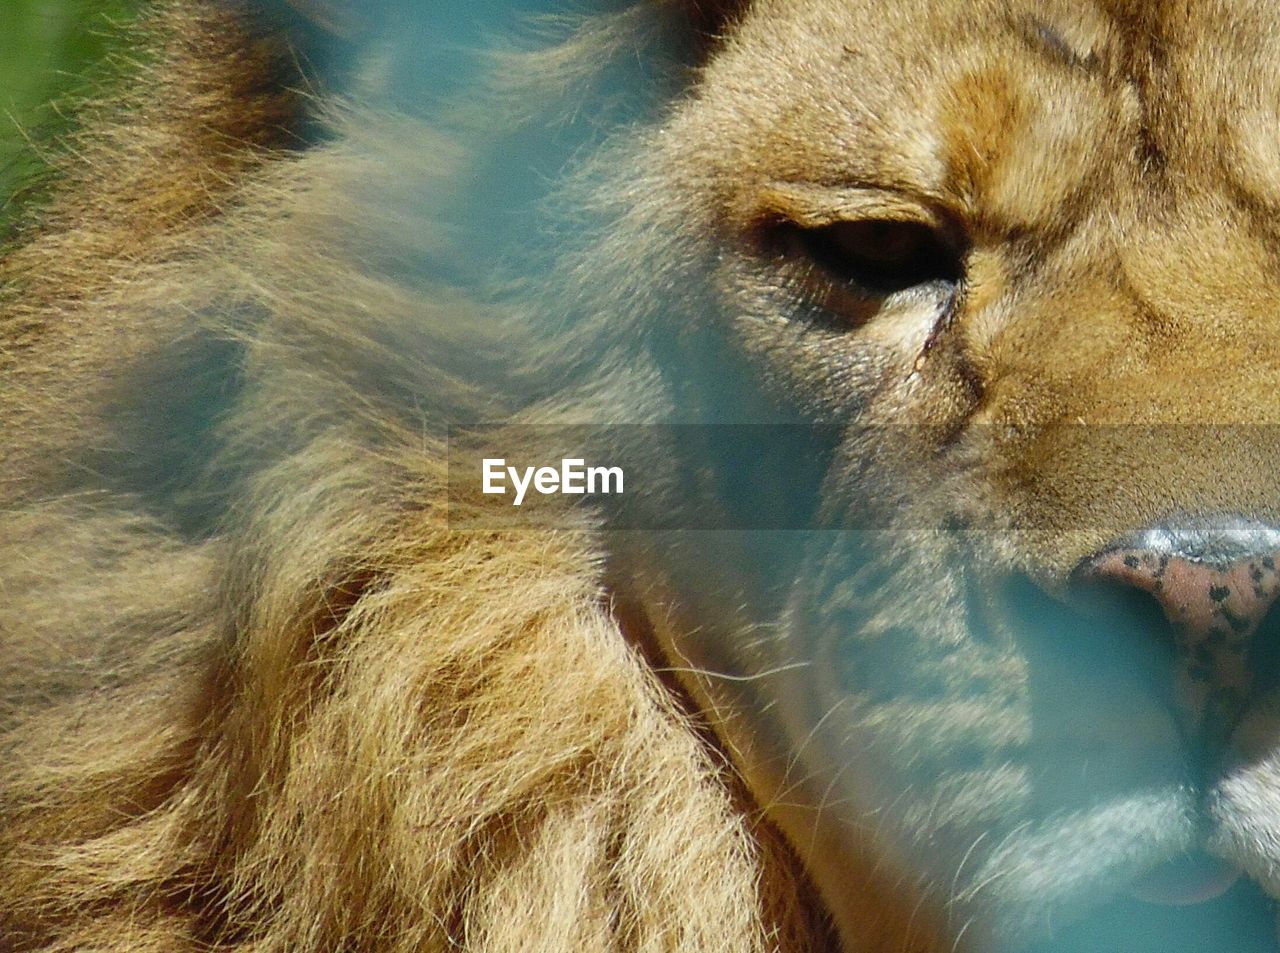 mammal, animal themes, one animal, domestic animals, animal head, no people, close-up, day, outdoors